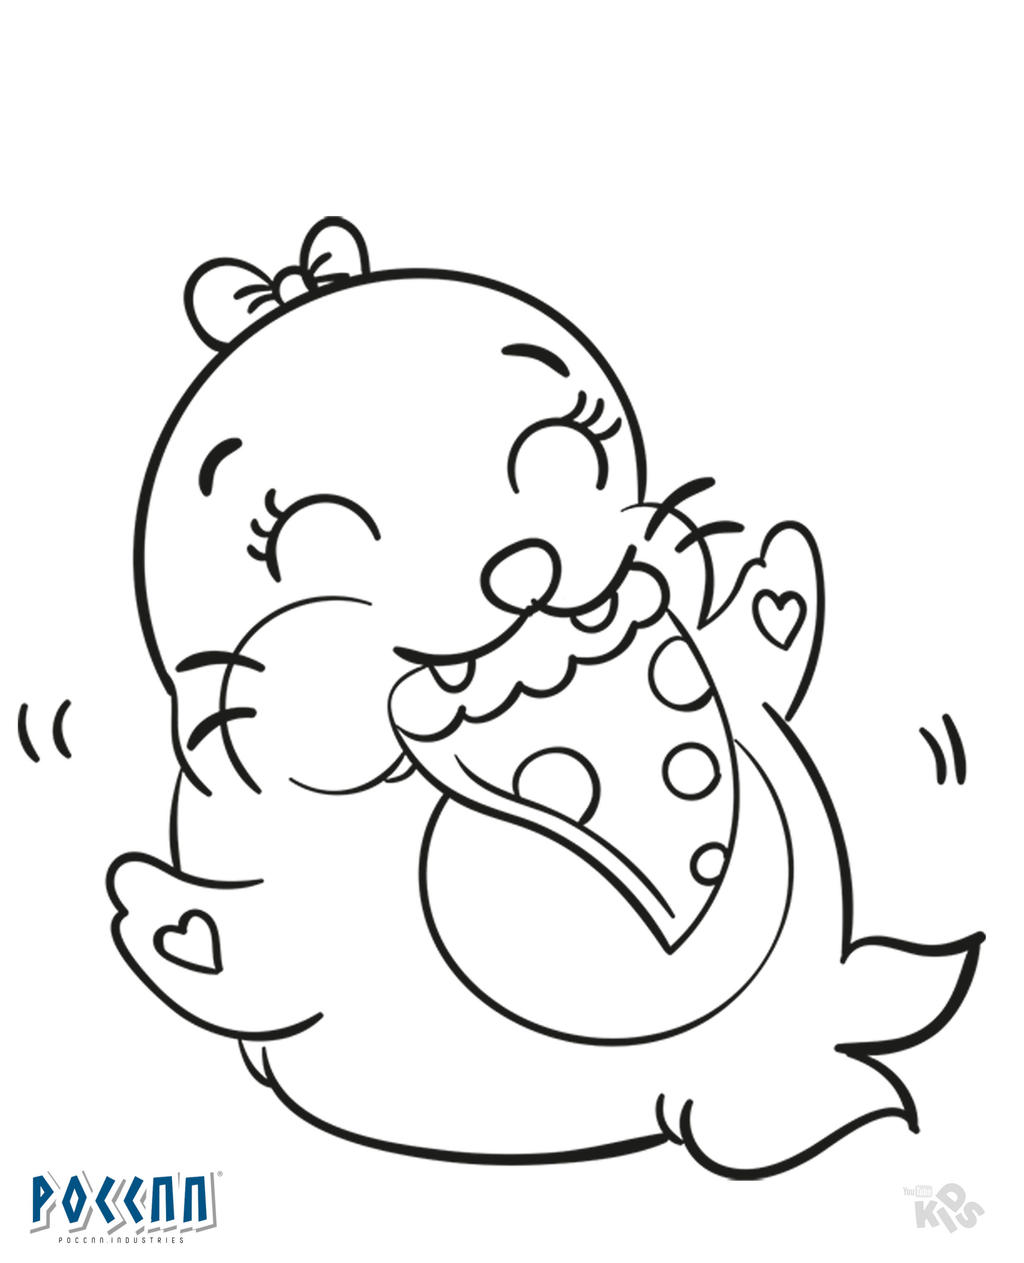 Seal And Pizza Kawaii To Color Lineart By Poccnnindustries On